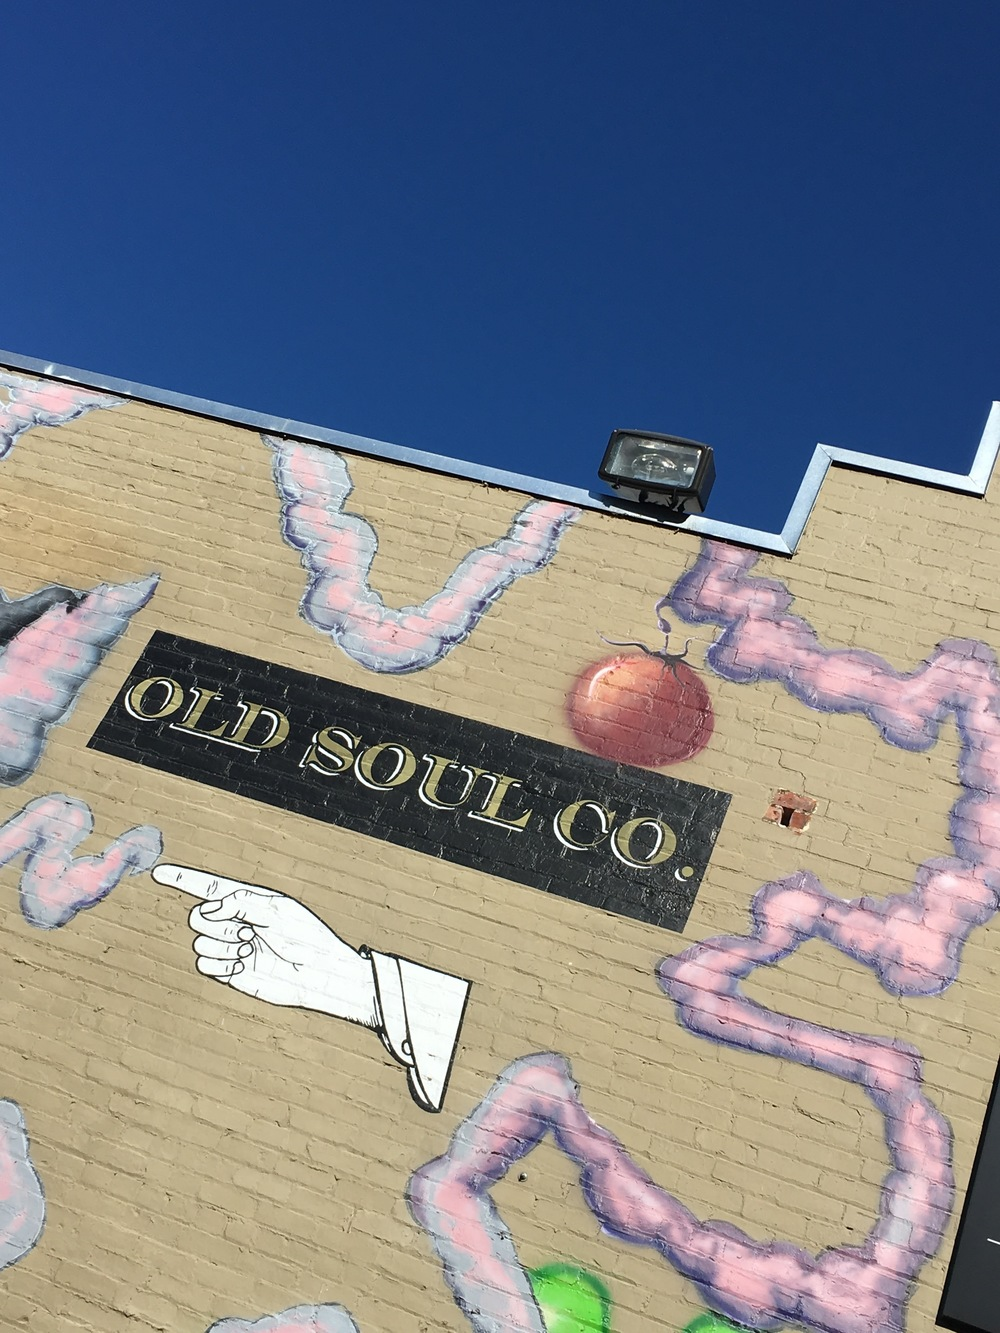 old soul co coffee